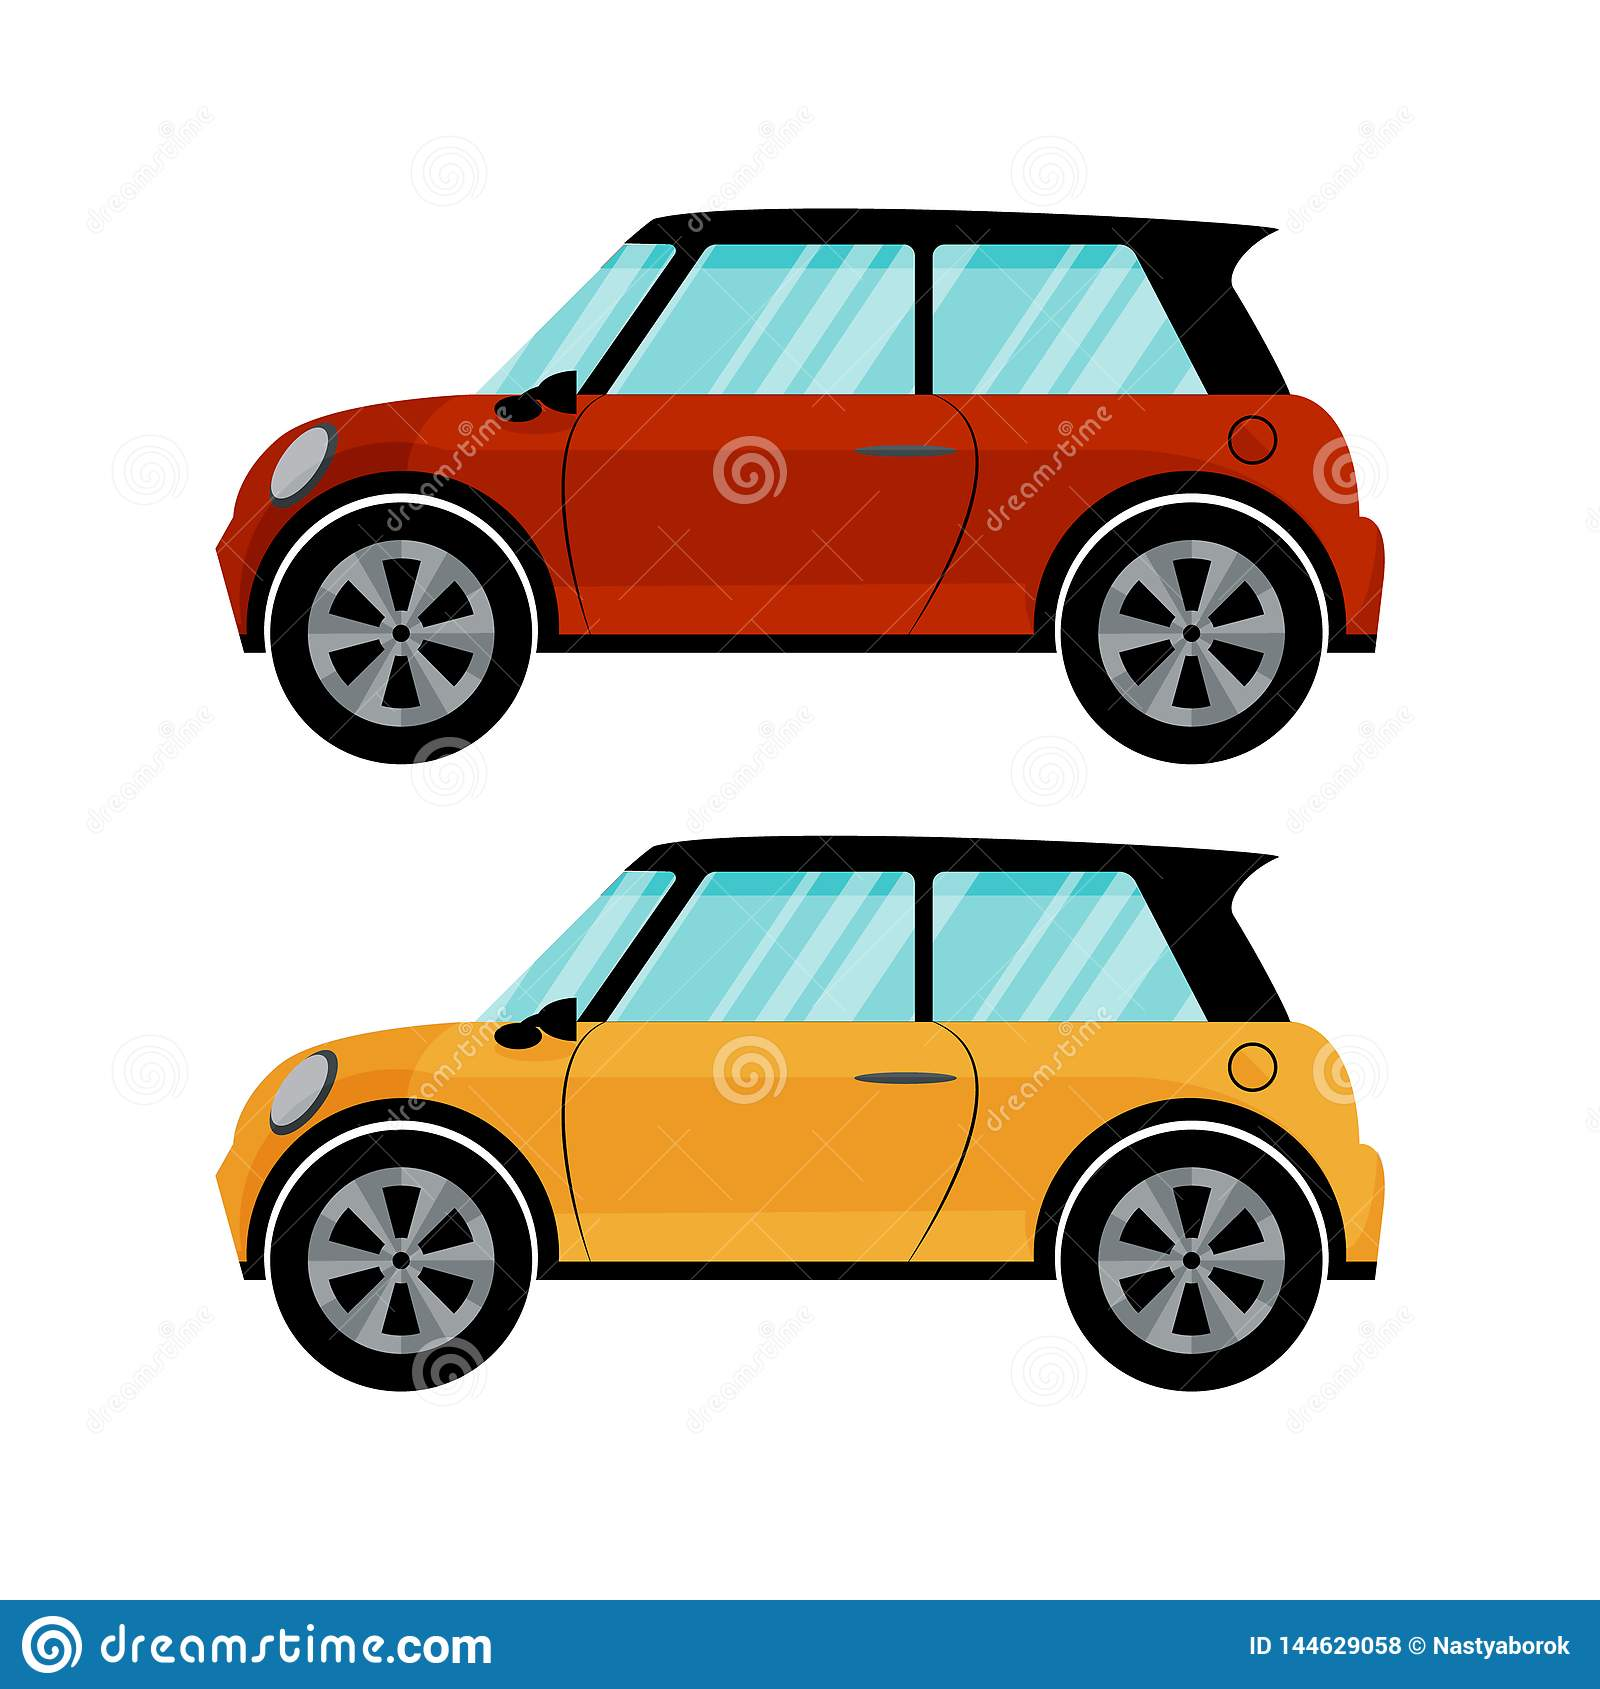 Isolated red and yellow cars in retro style on white background. Flat vector design